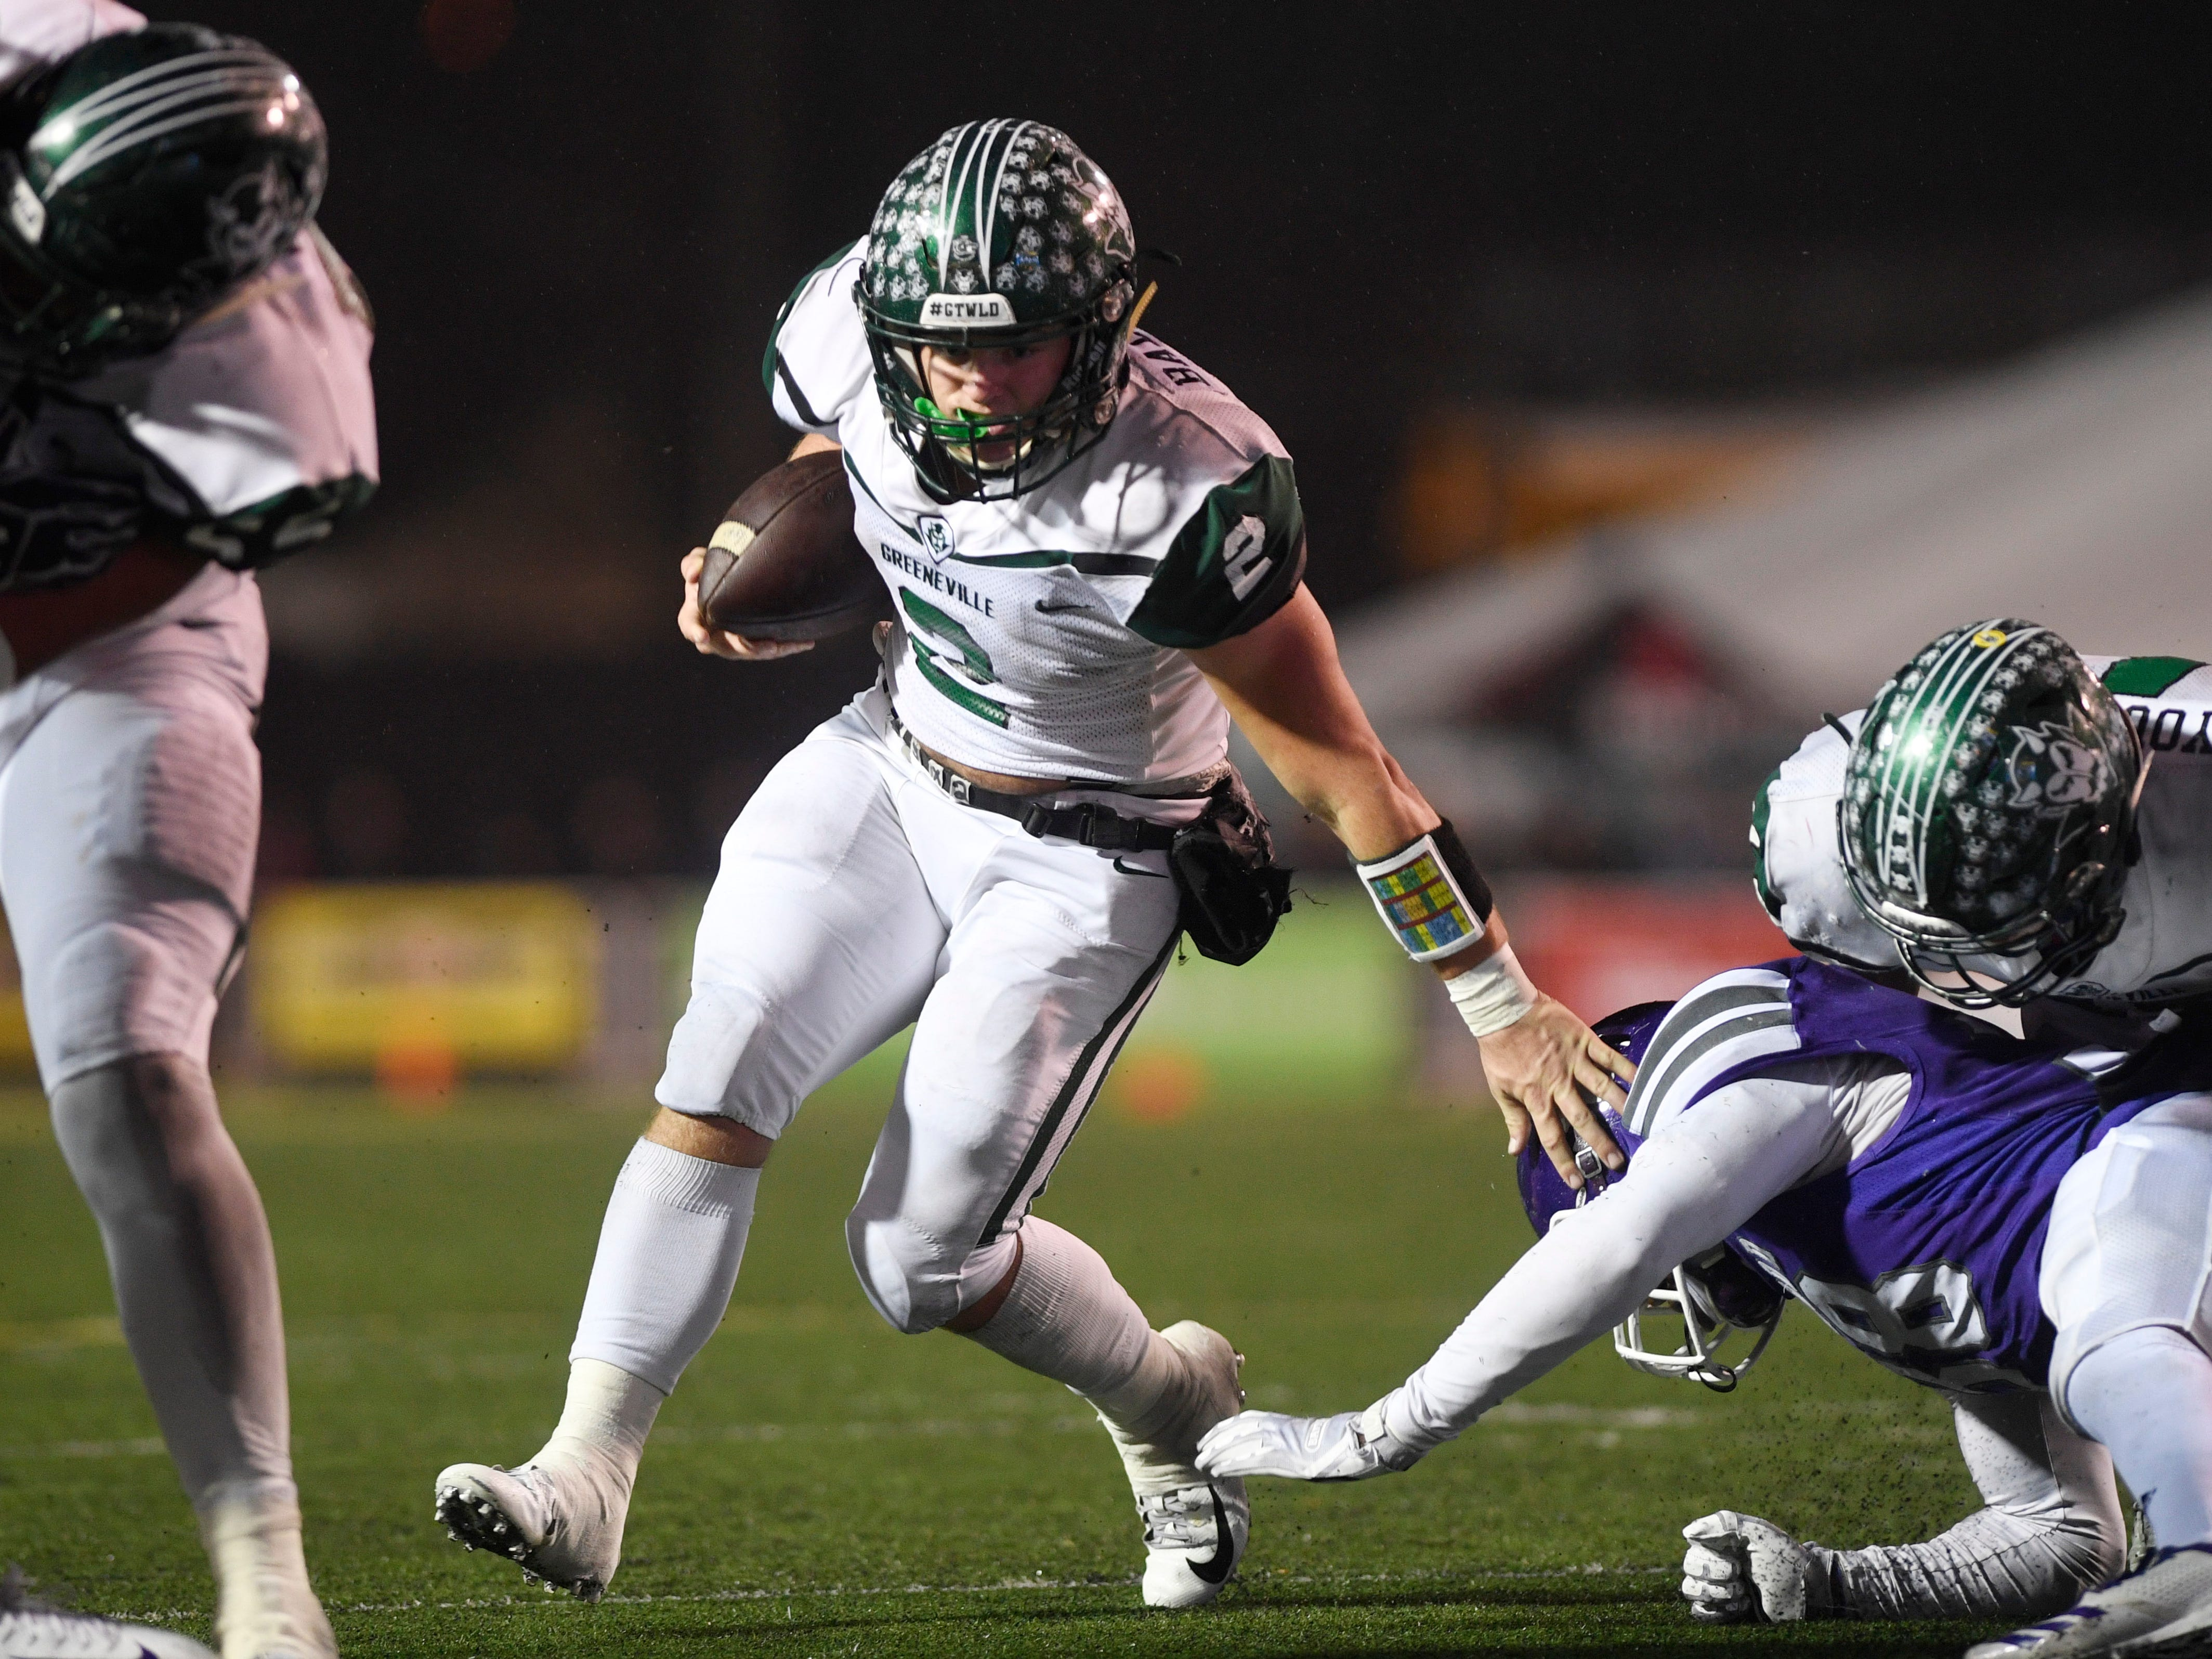 Greeneville's Cade Ballard (2) runs with the ball during the second half of the Class 4A BlueCross Bowl state championship at Tennessee Tech's Tucker Stadium in Cookeville, Tenn., on Thursday, Nov. 29, 2018.